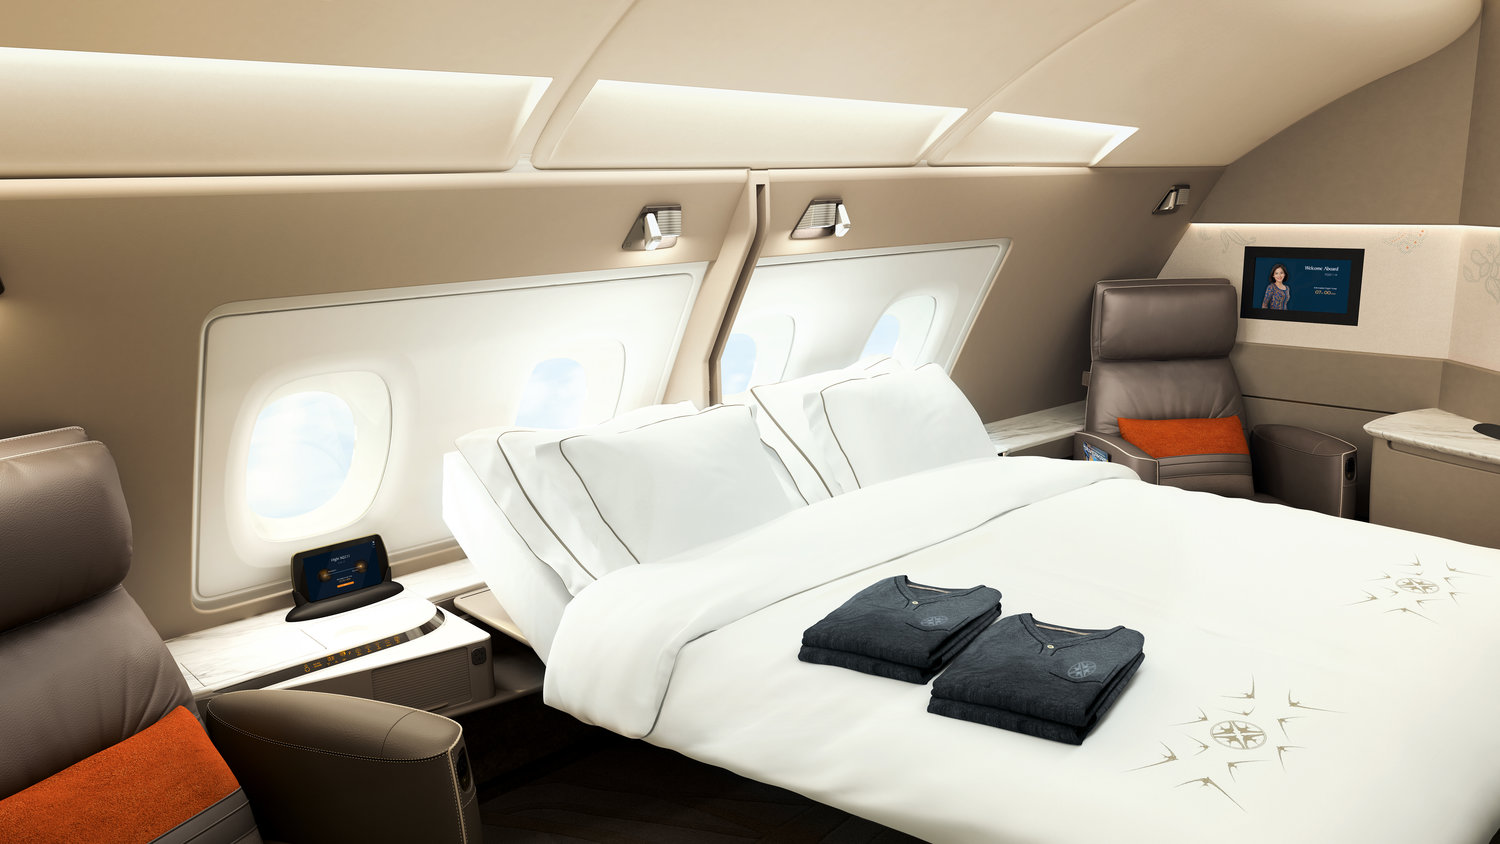 Singapore Airlines to Debut New A380 Products on London and Hong Kong Route